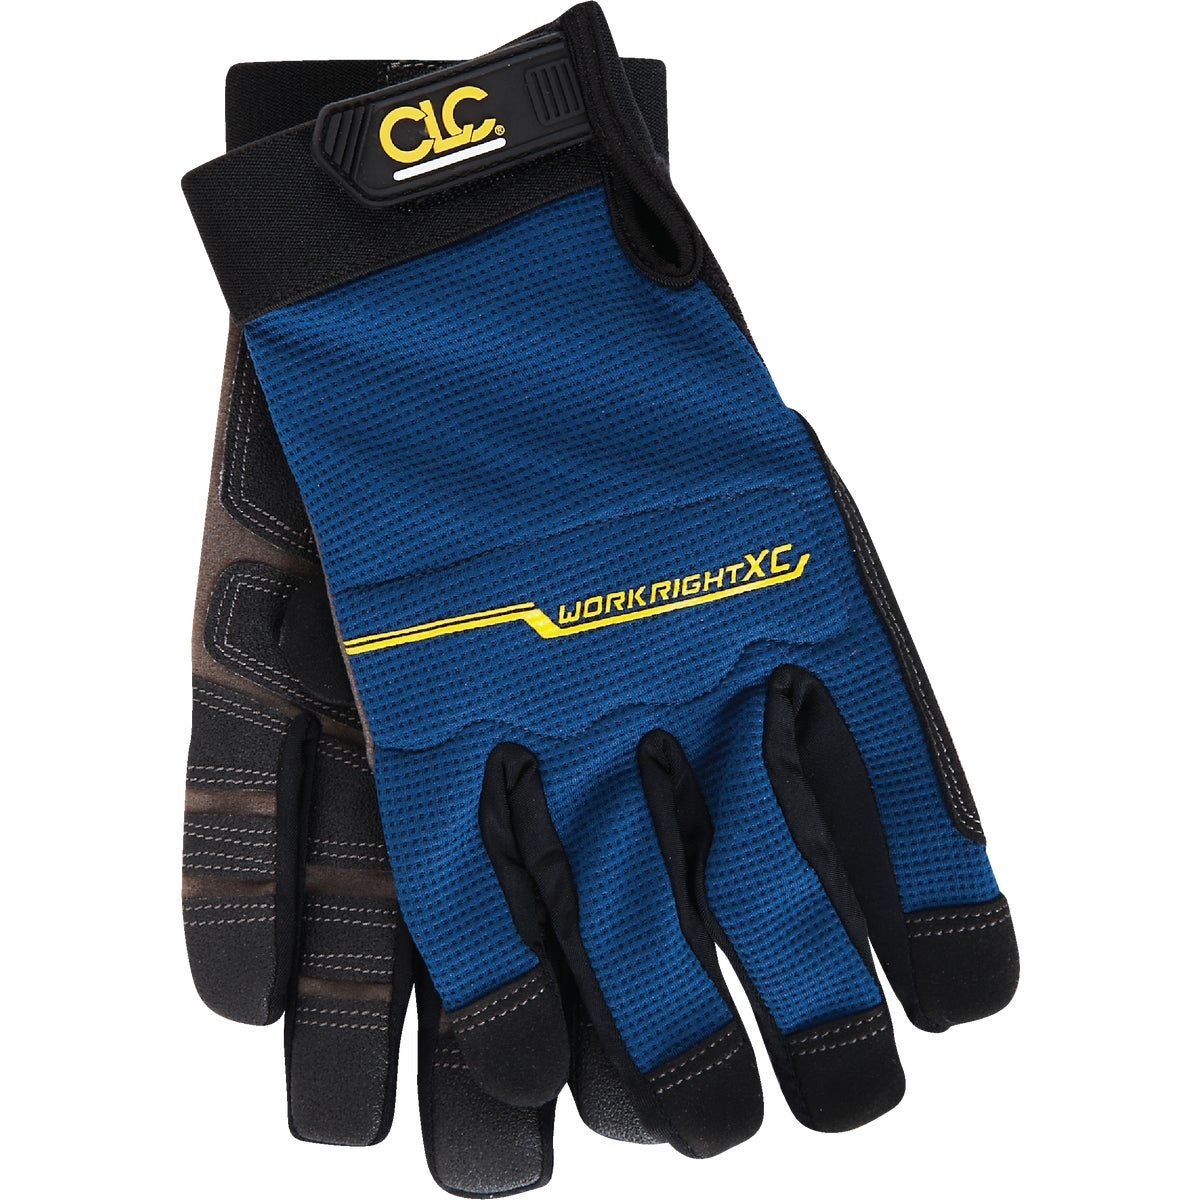 MED WORKRIGHT XC GLOVE - 126M by Custom Leathercraft